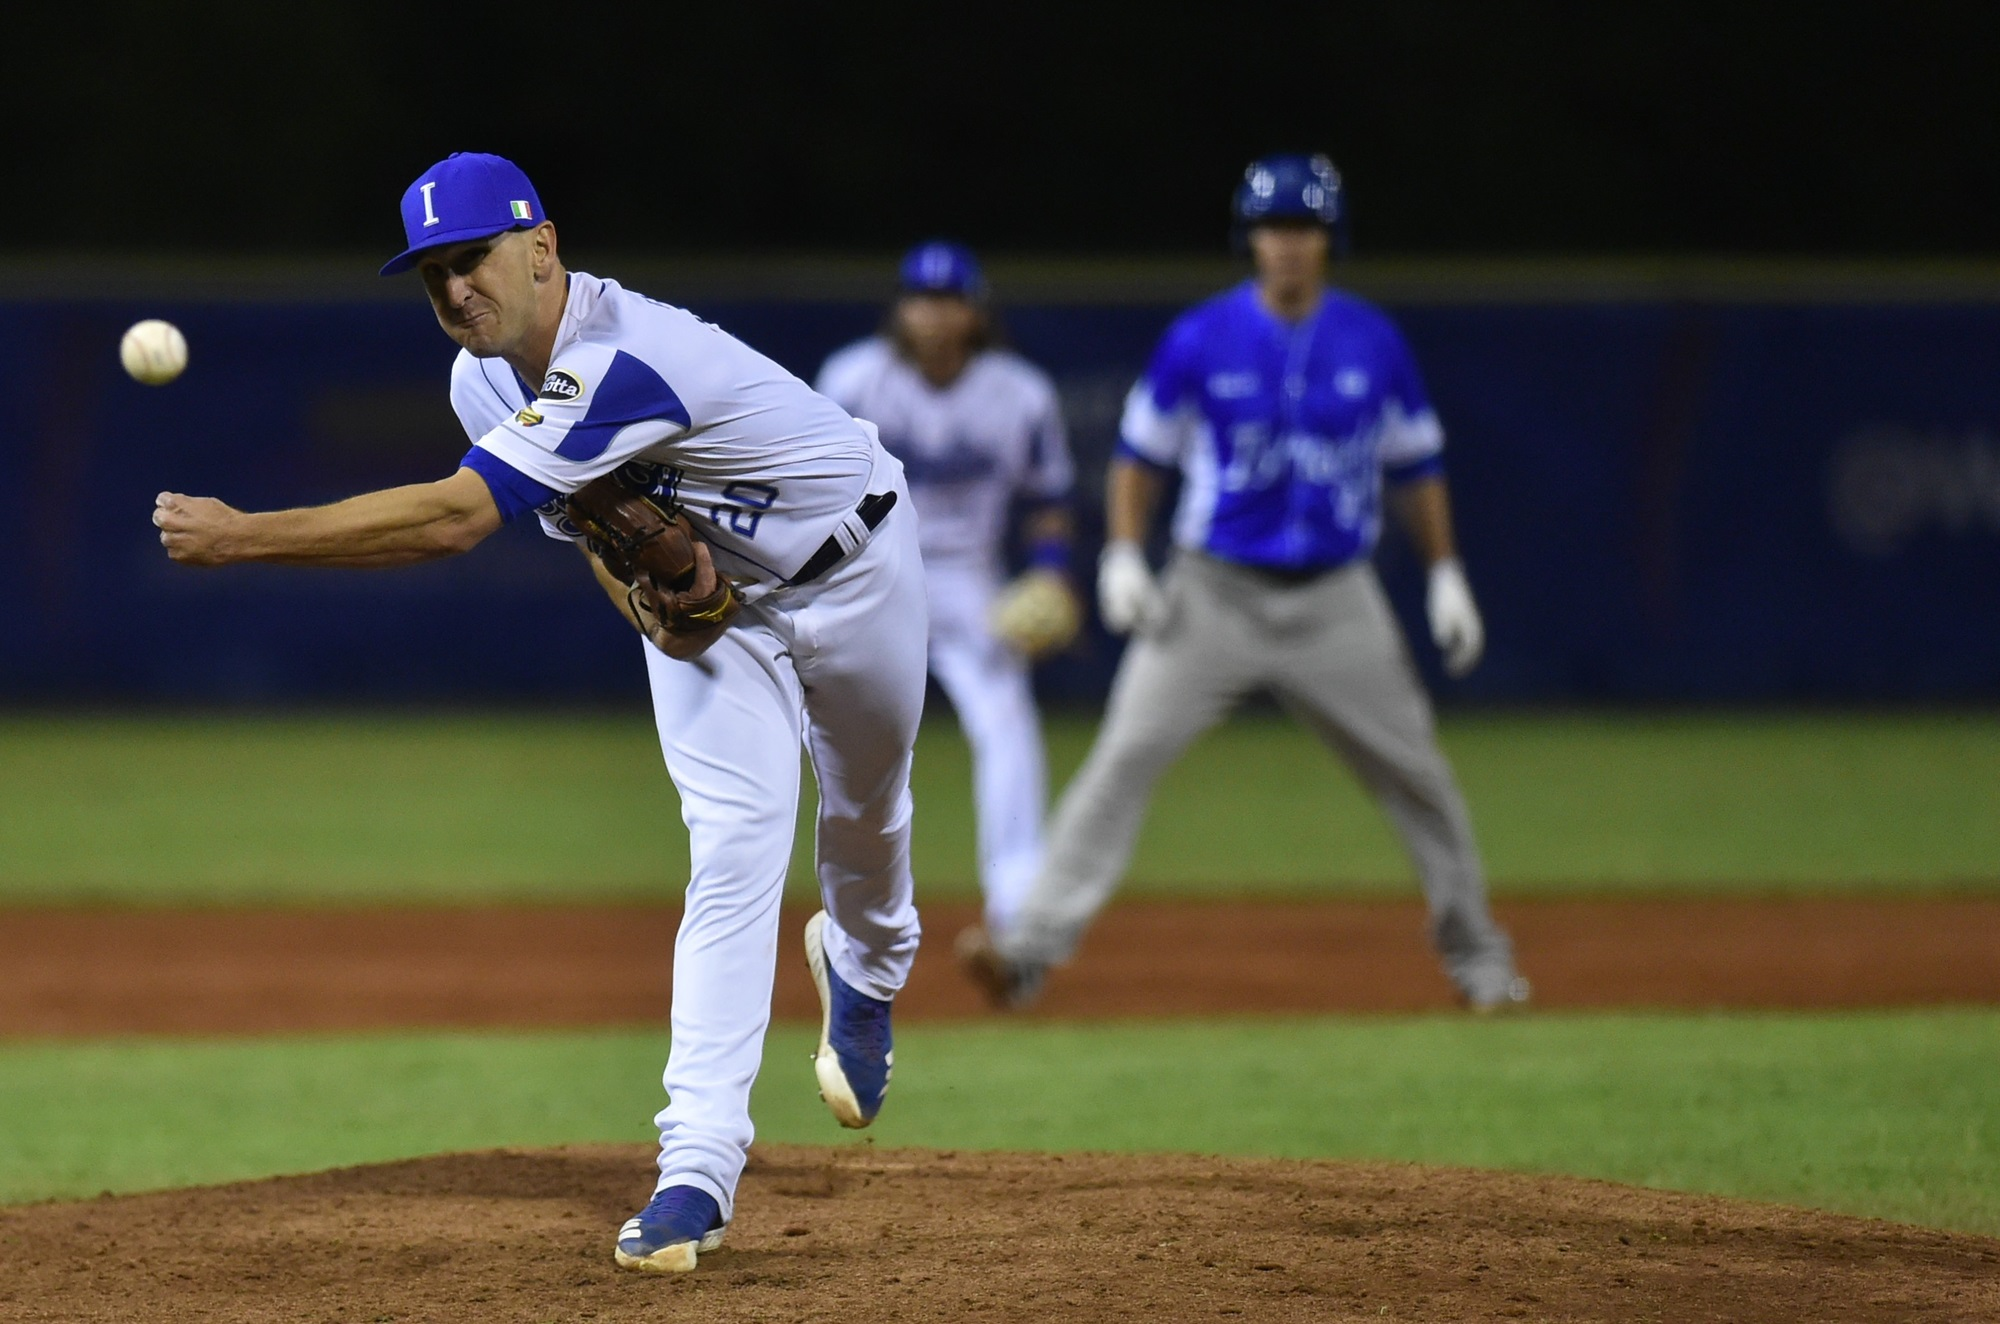 Venditte could not stop Israel